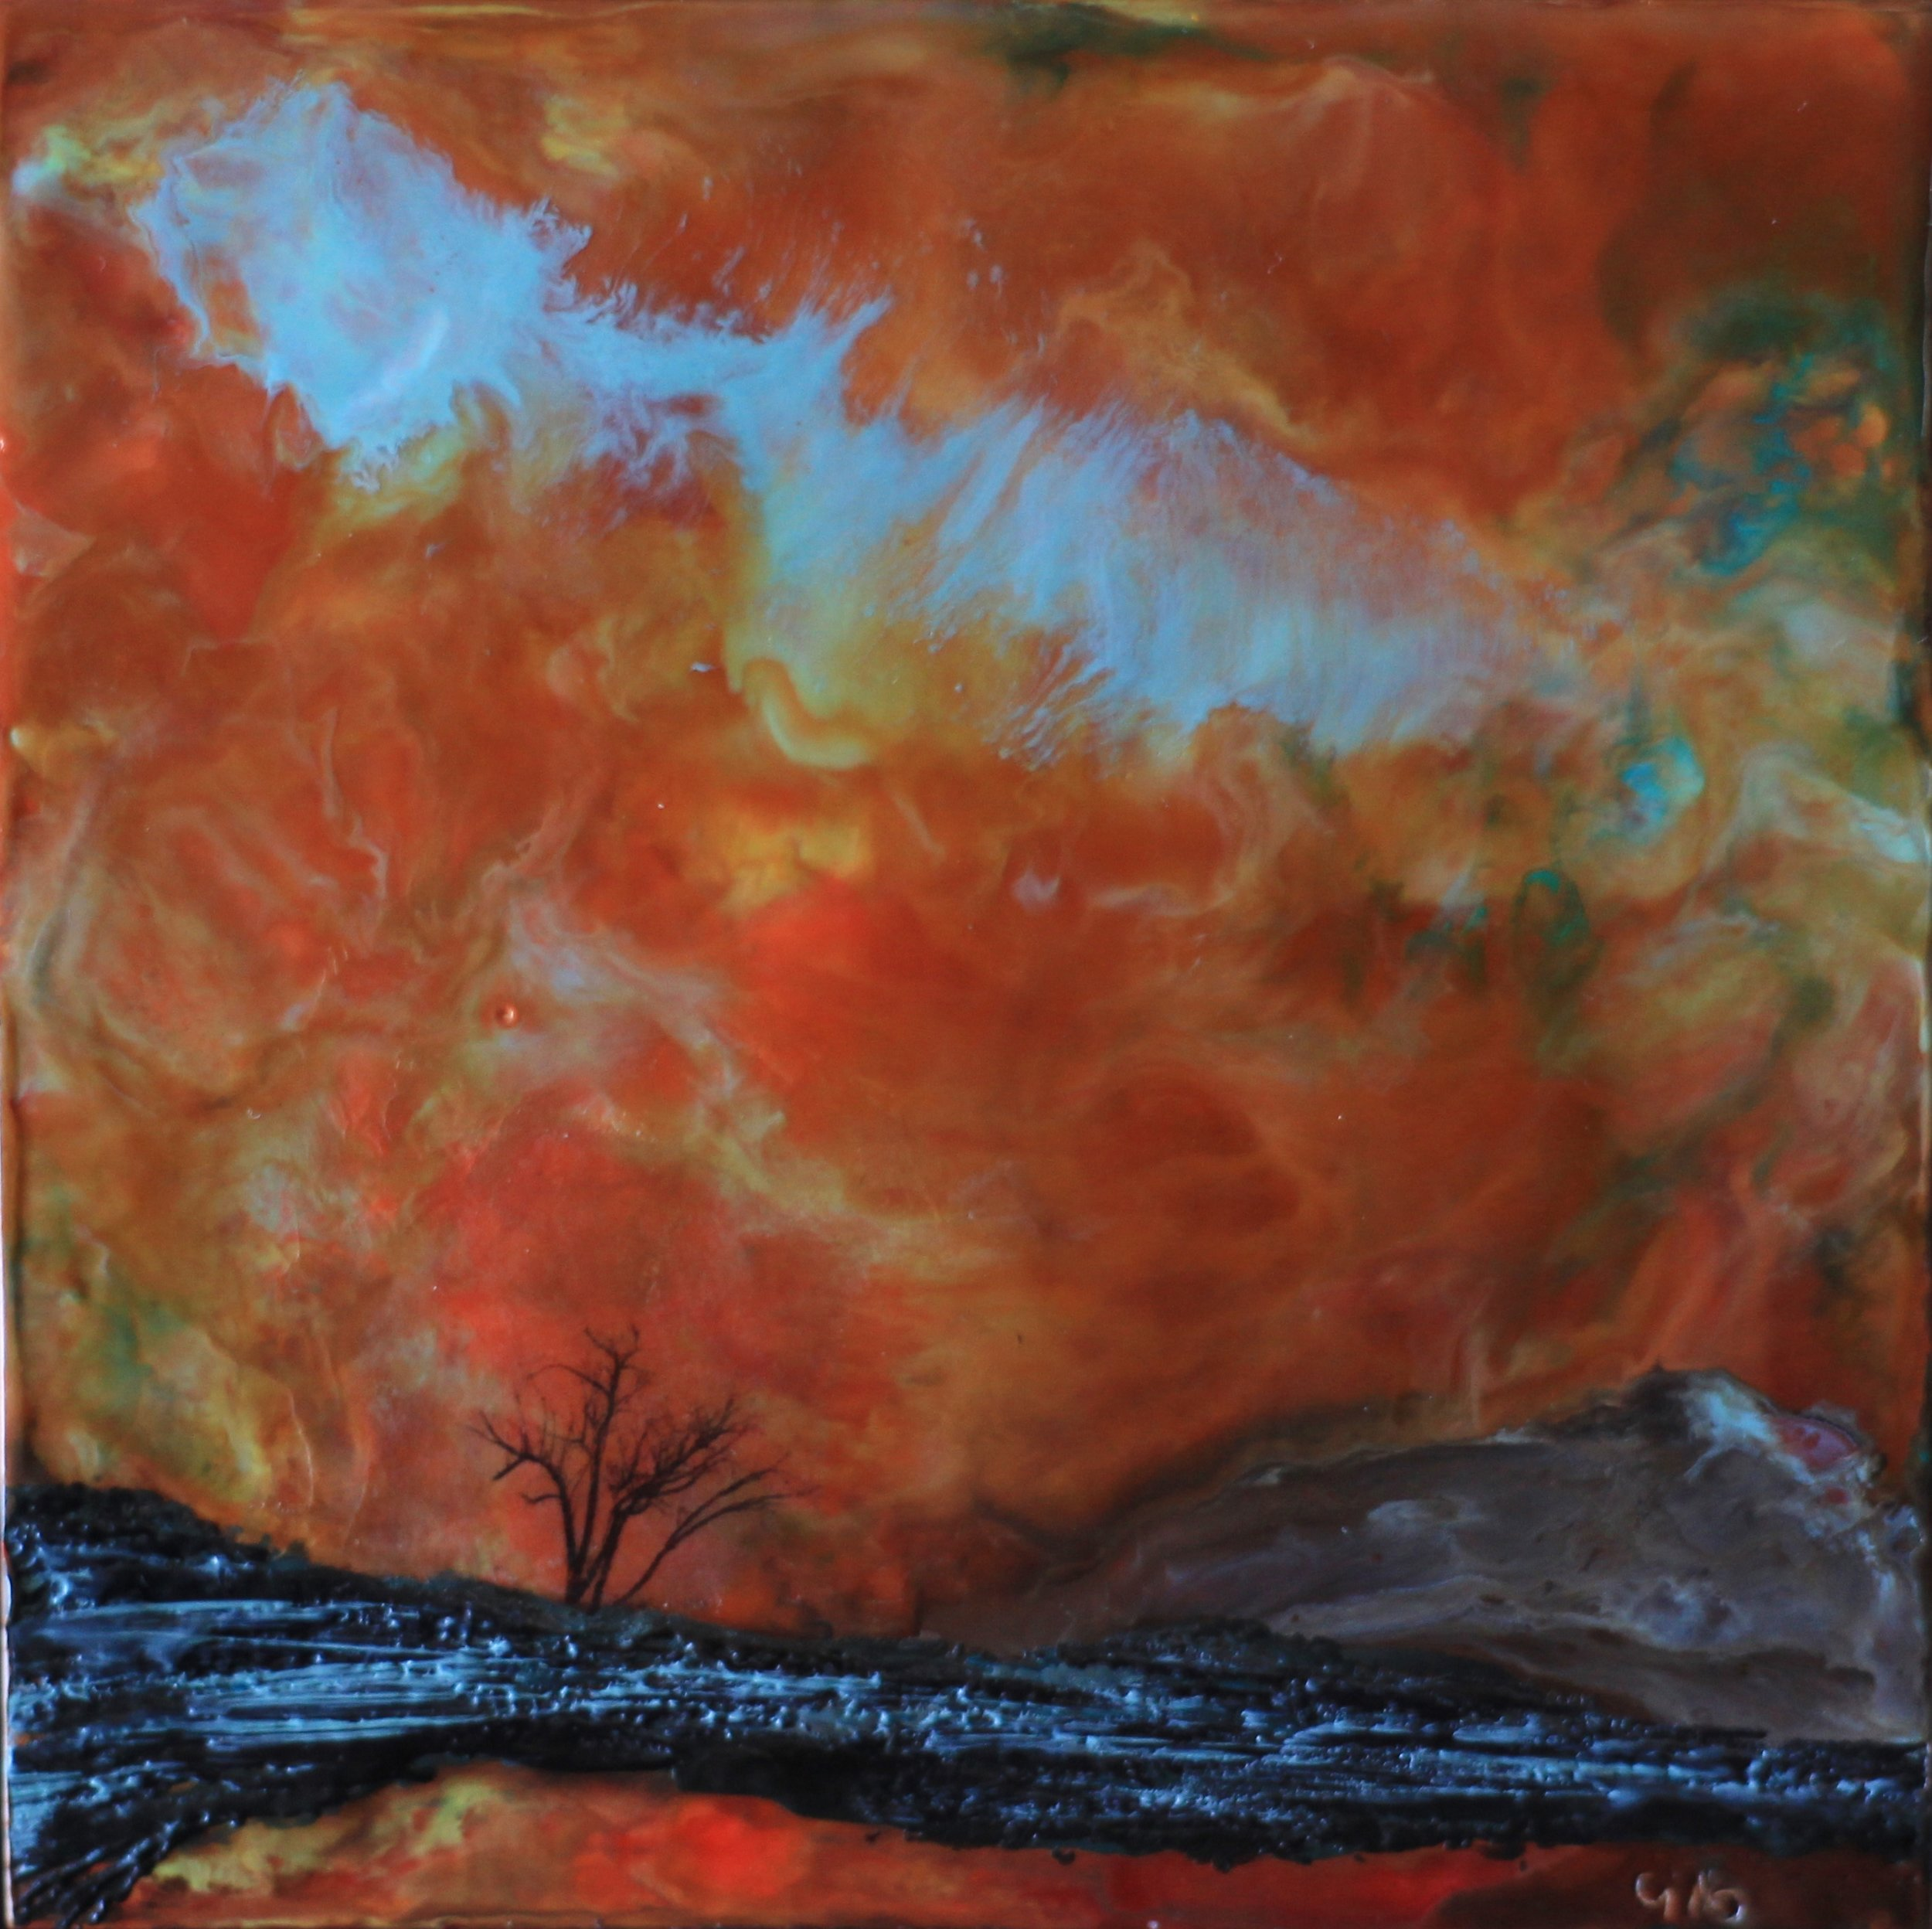 """""""Machination""""   6x6"""" framed  encaustic mixed media on cradle board  SOLD  2016"""